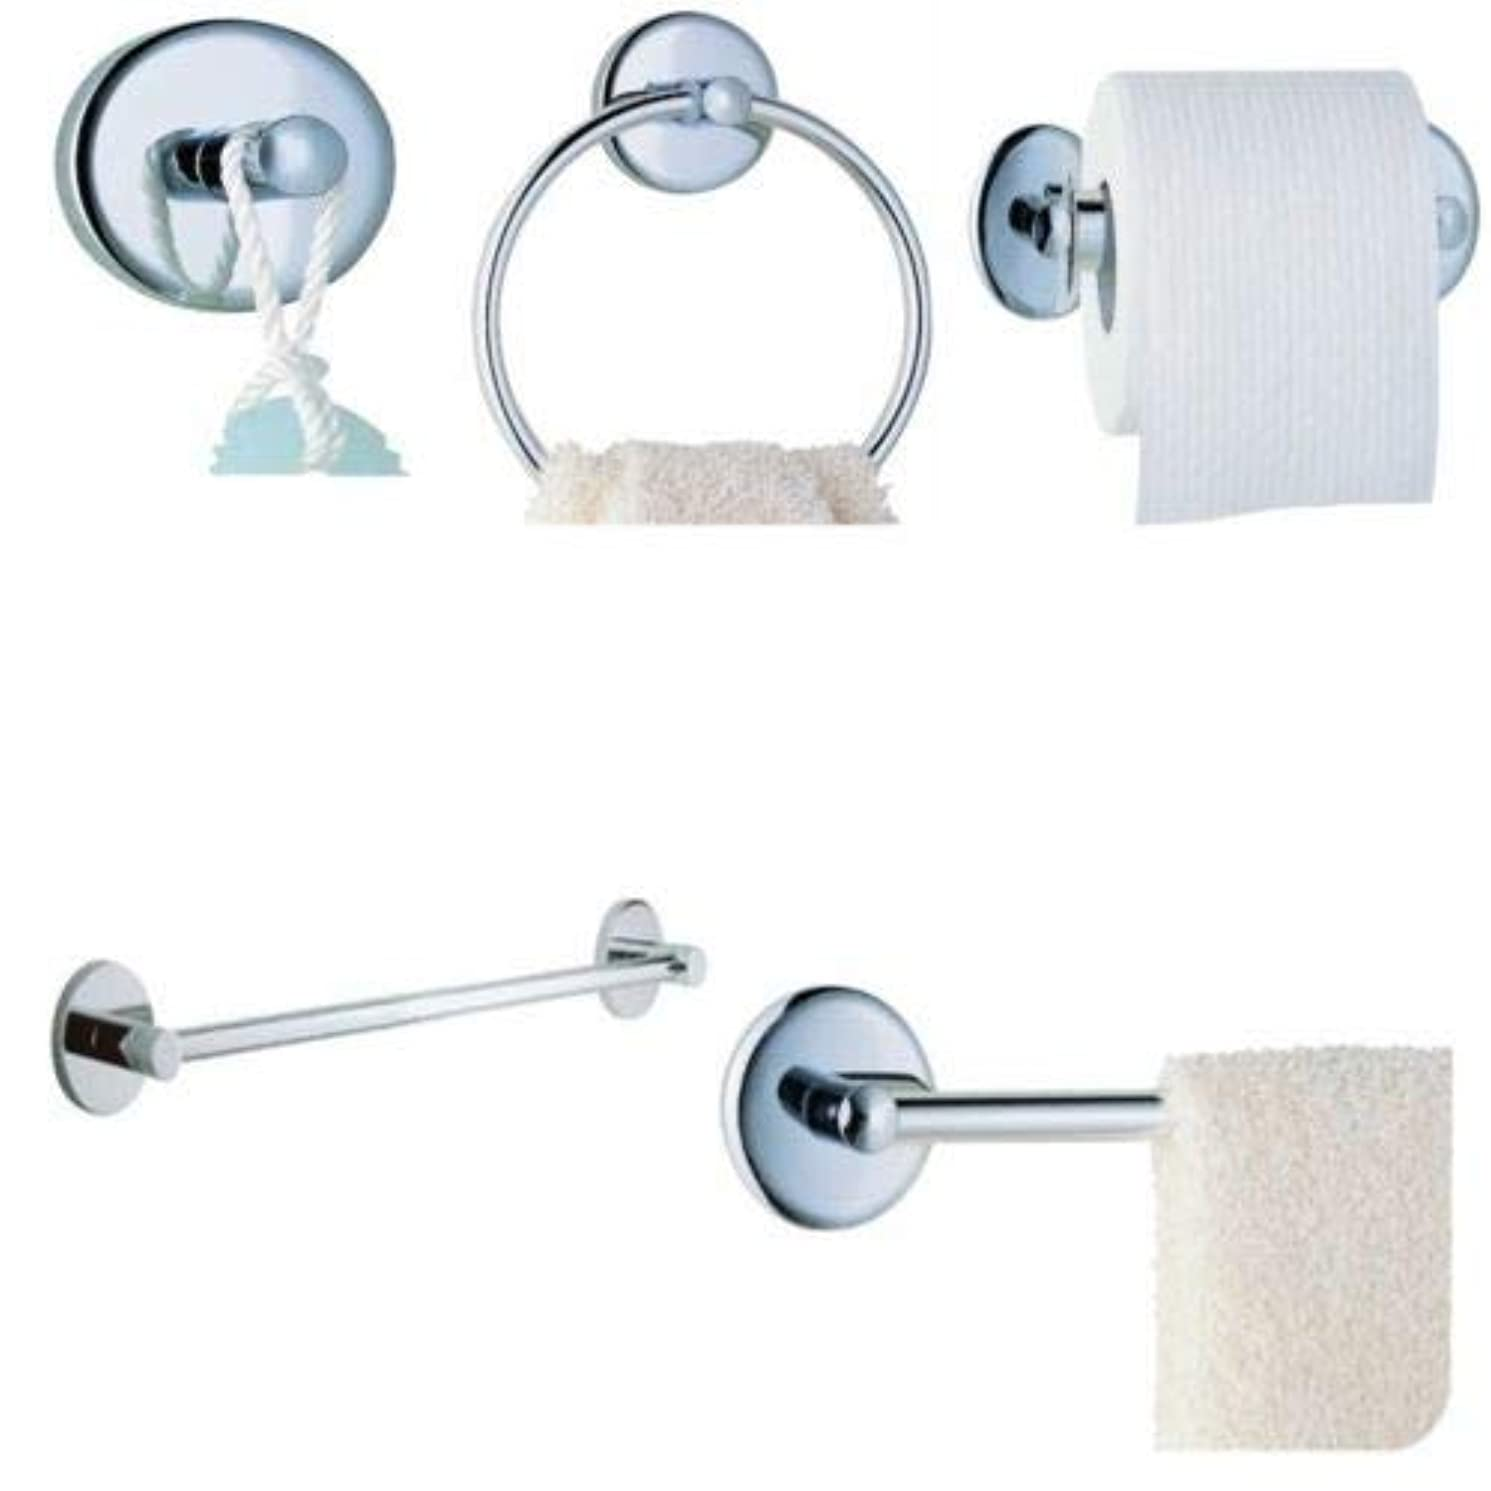 4-piece Bathroom Hardware Accessory Set, Includes Towel Bar, Toilet Paper Holder, Towel Ring and Robe Hook, Chrome Finish - By Plumb USA